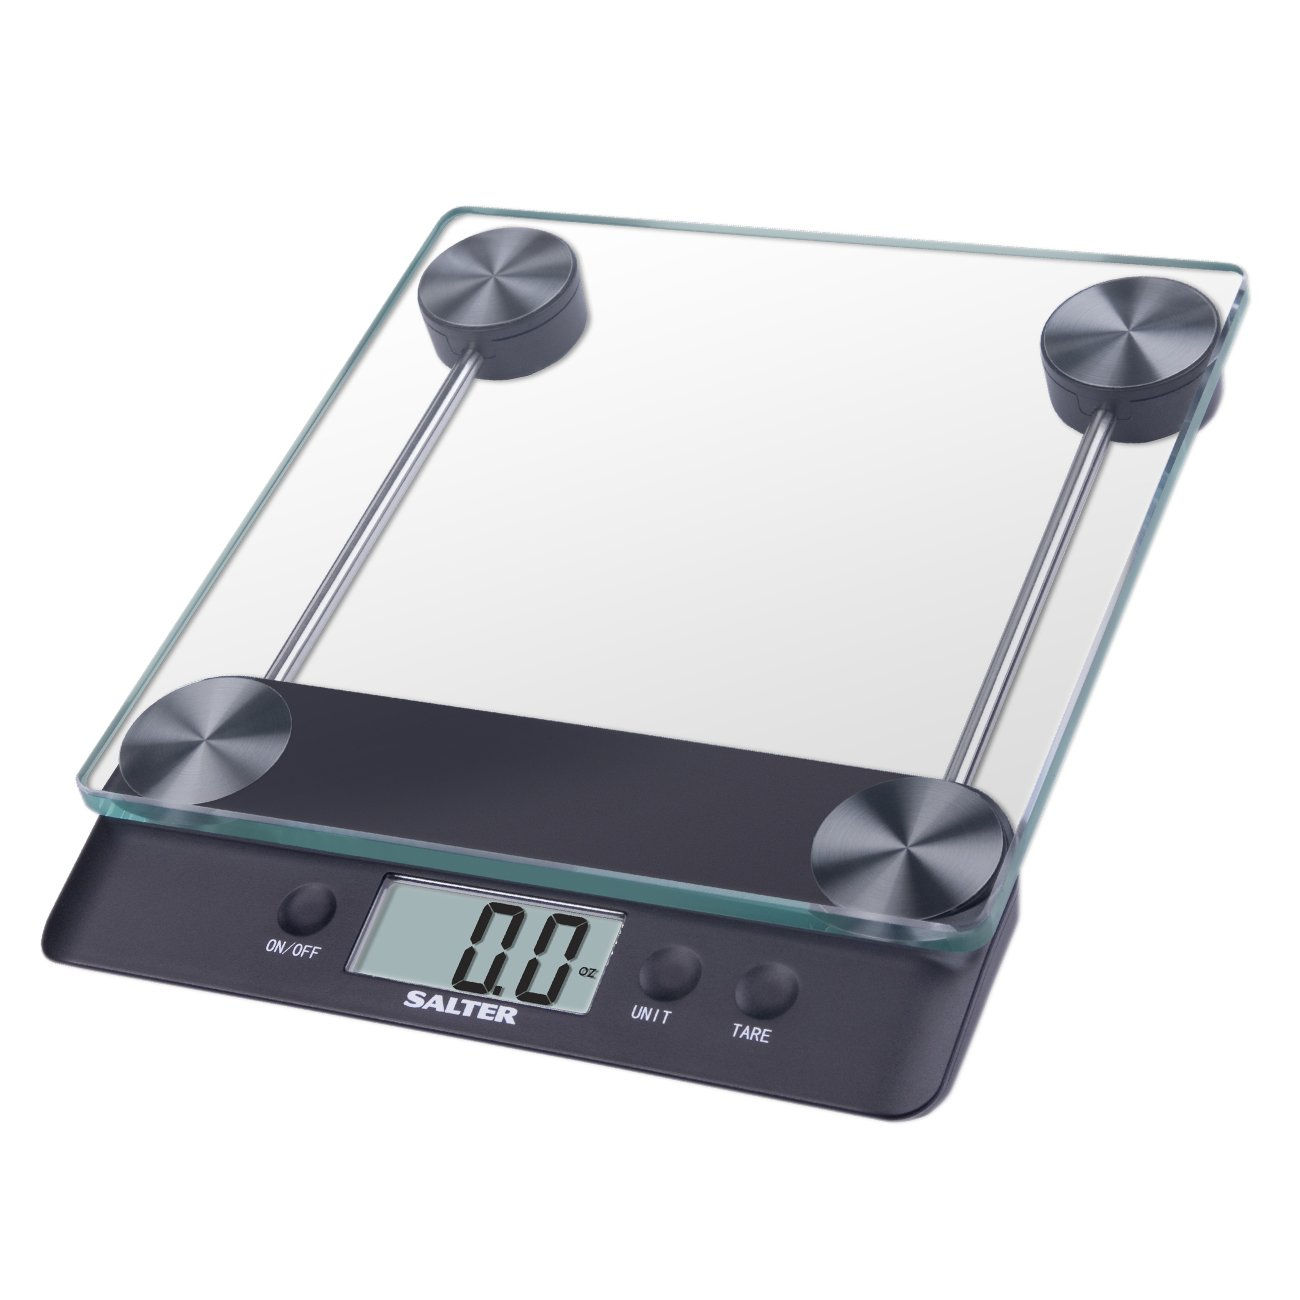 Salter 3830 digital kitchen scale best digital scales for Best smart kitchen scale